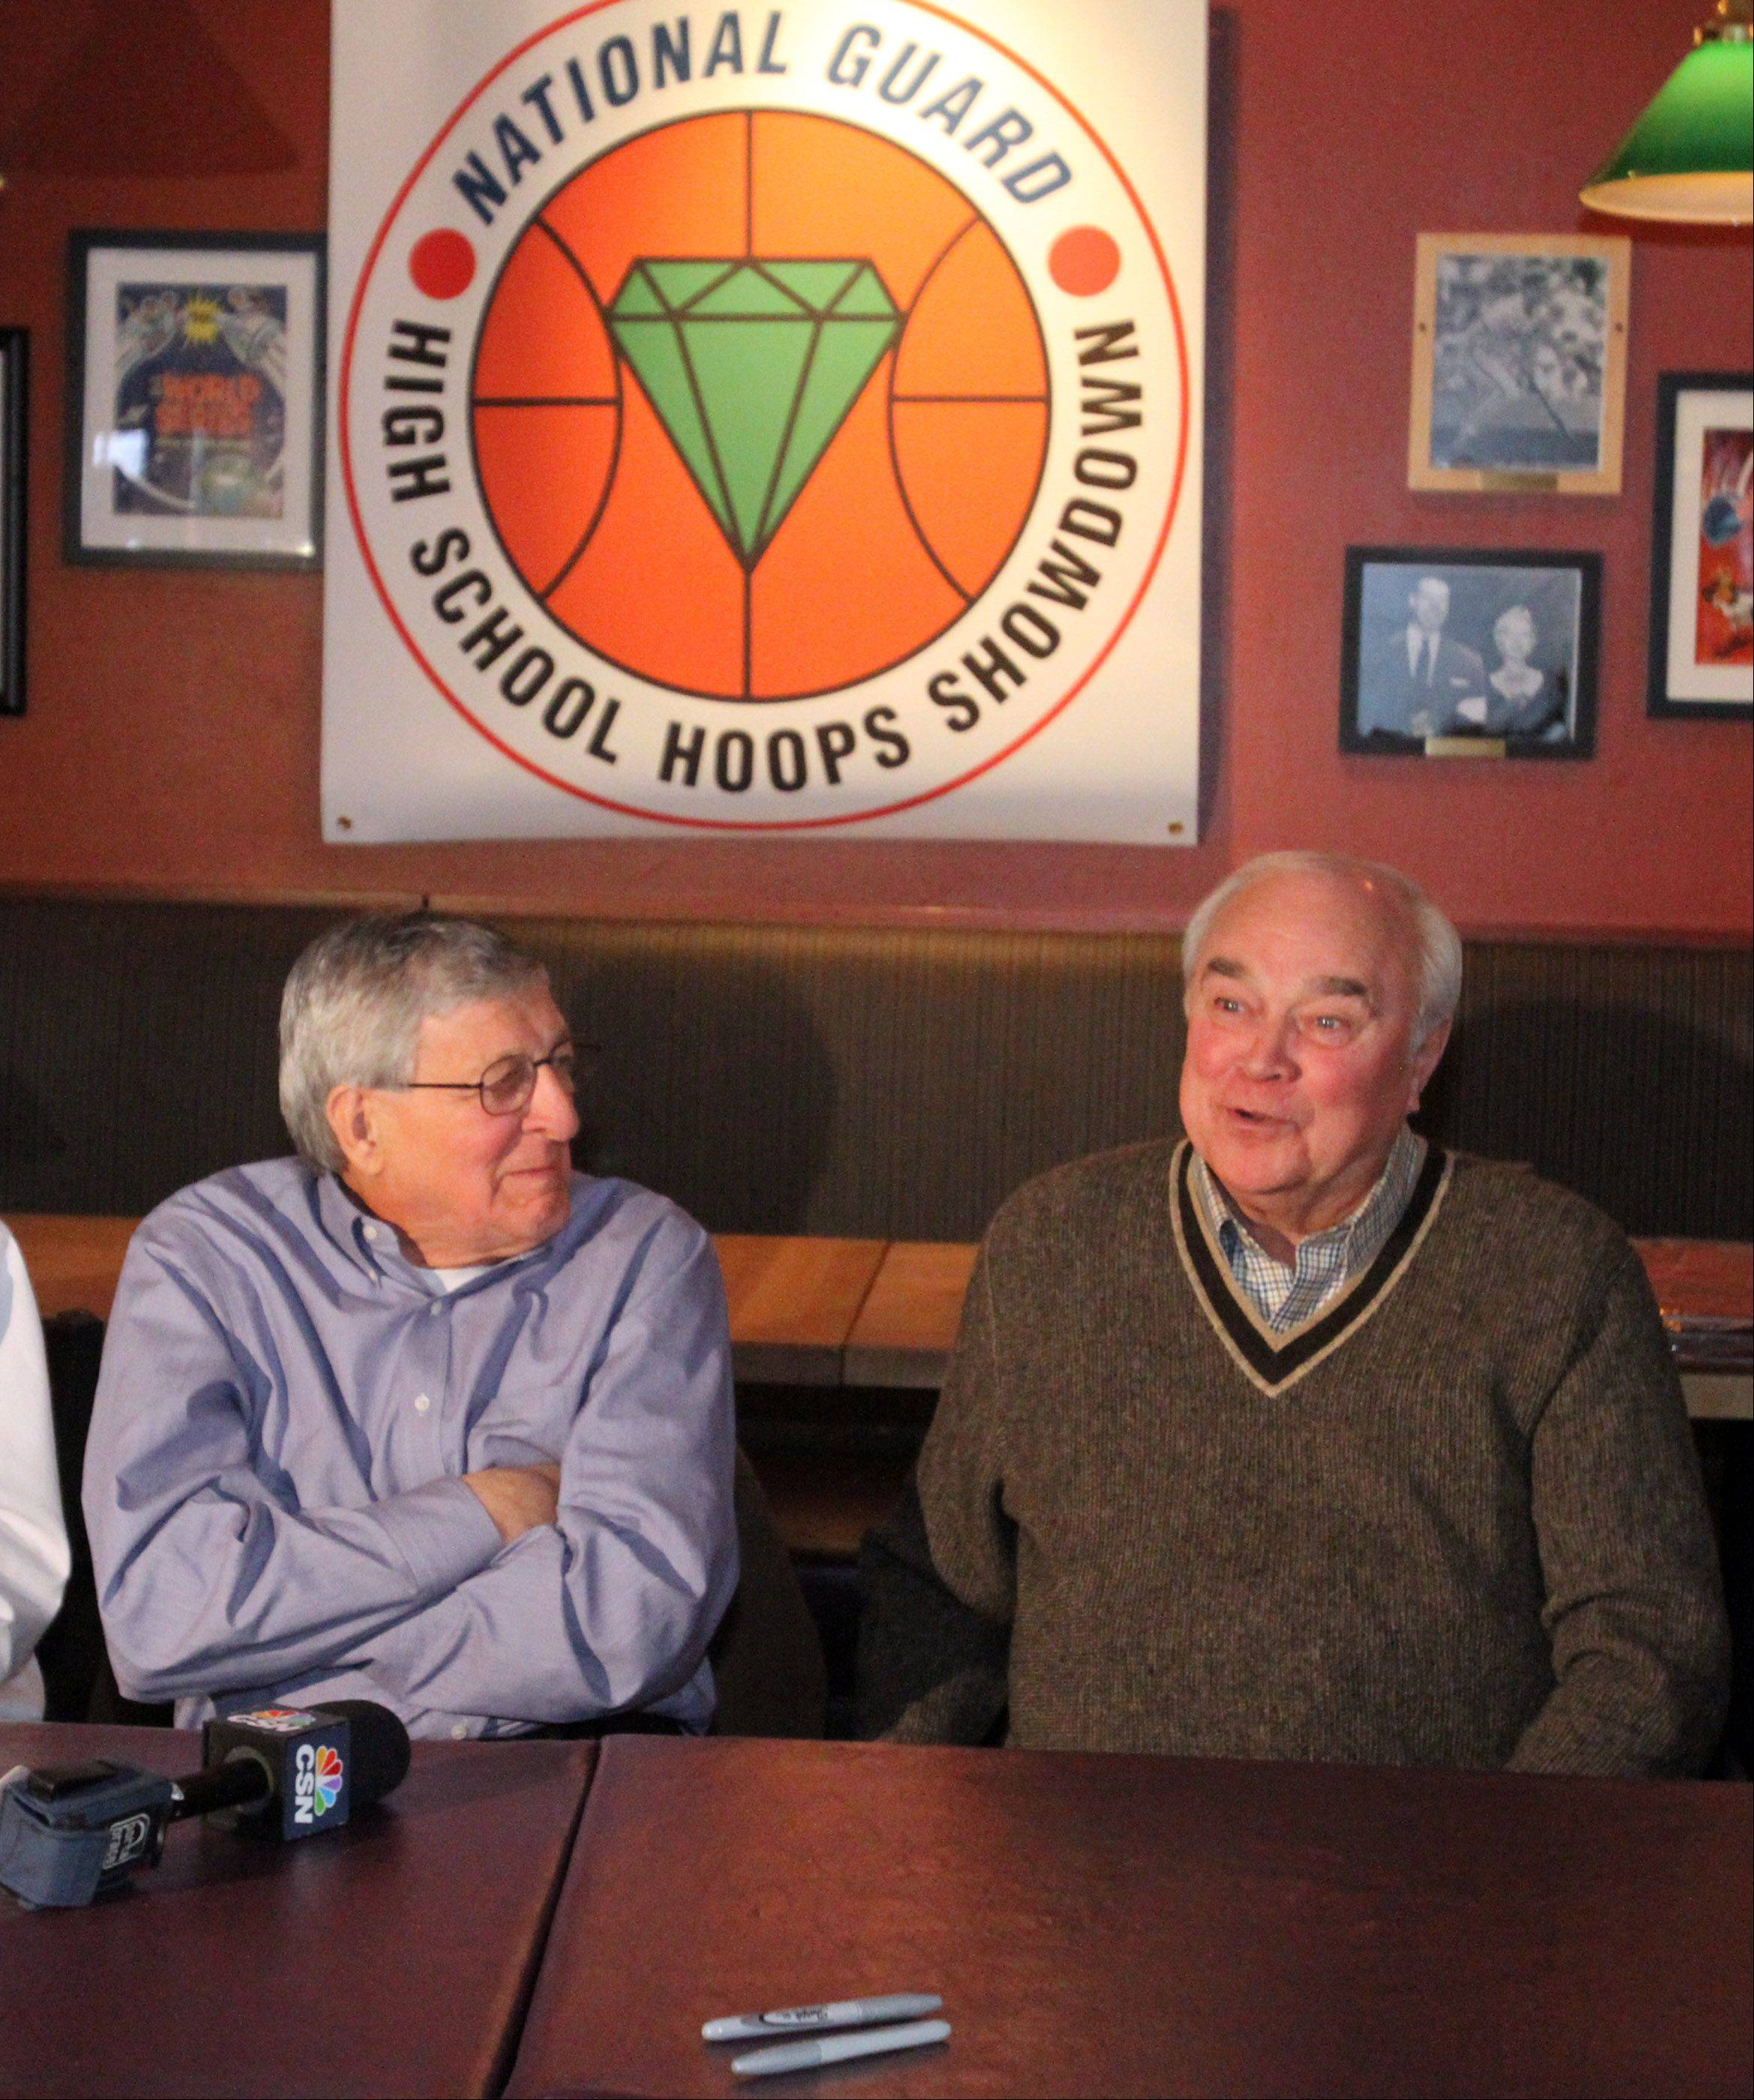 St. Joseph coach Gene Pingatore, left, and West Aurora coach Gordie Kerkman, whose teams will play each other in game three of the National Guard High School Hoops Showdown on Saturday at the Sears Centre, speak during a news conference at Lou Malnati's Pizzeria in Schaumburg on Wednesday.